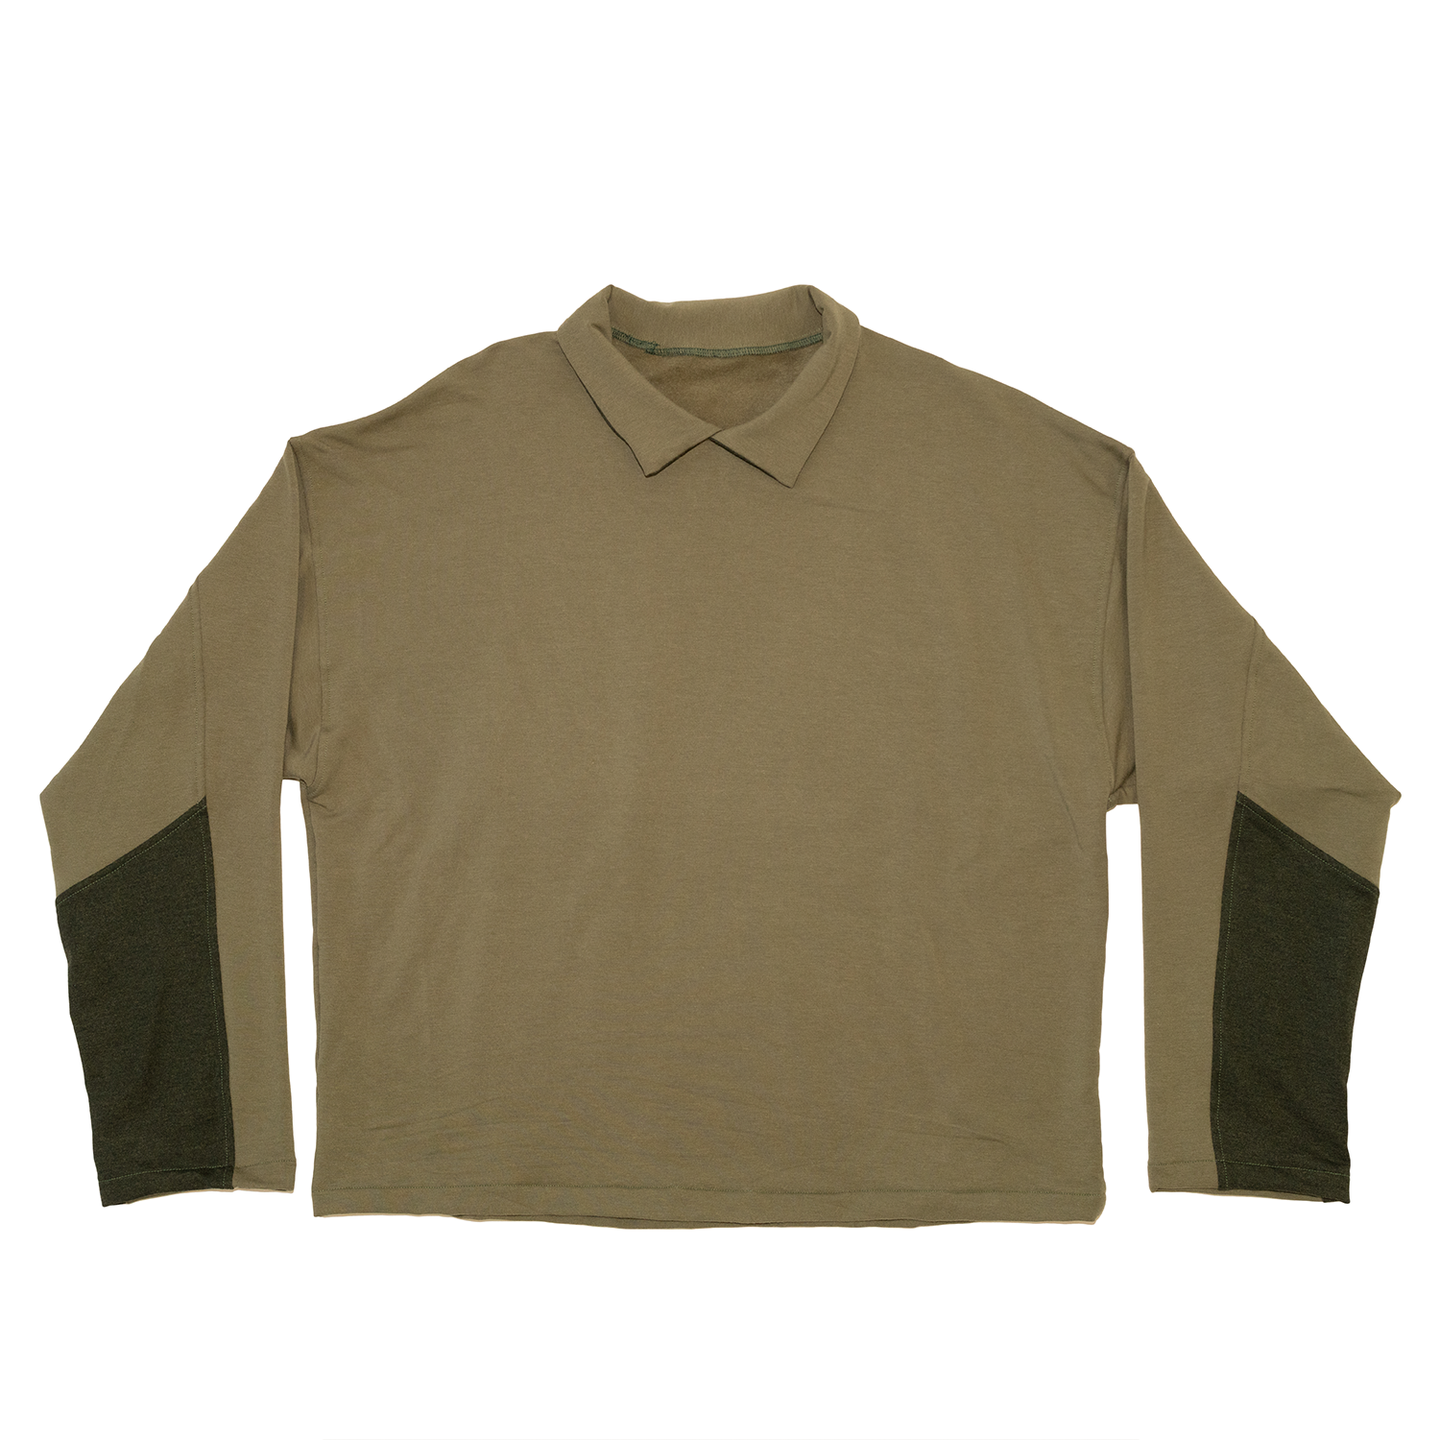 Collared Crewneck in Olive